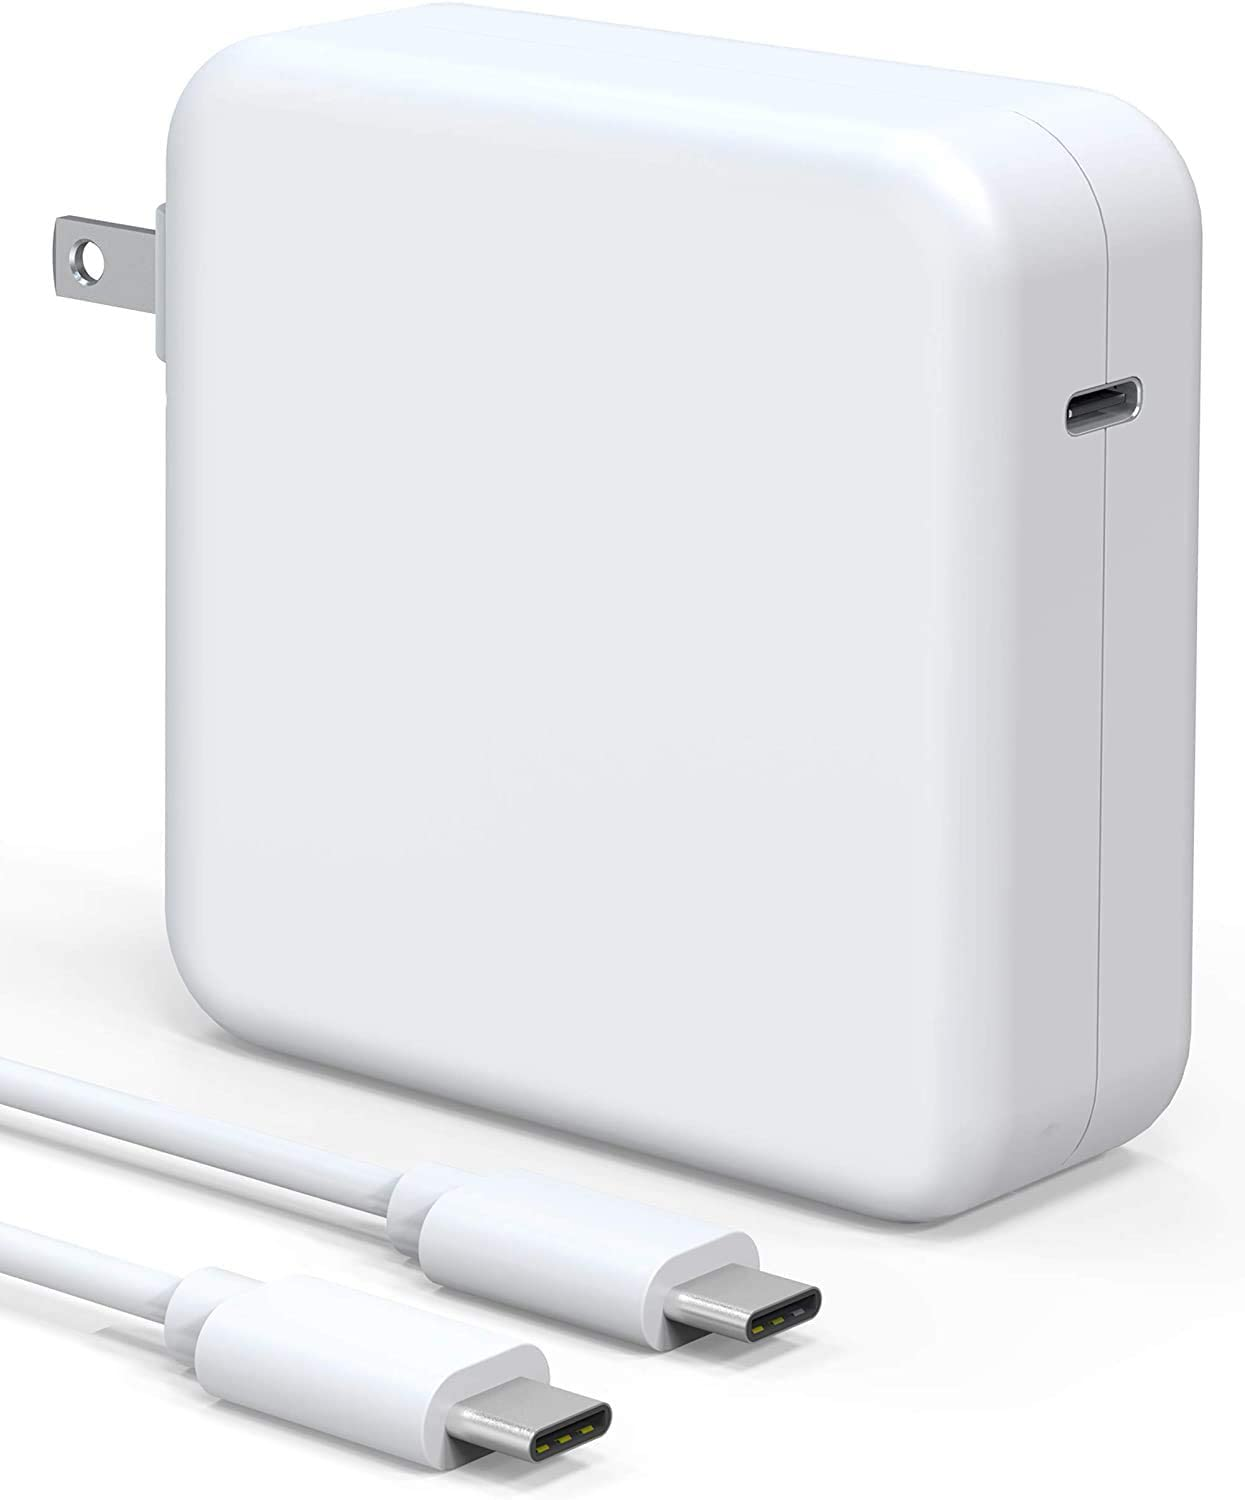 """Sehonor USB-C Charger with 87W Power Delivery 3.0 Port,Replacement for MacBook Pro with 13"""" 15"""" After 2016 and Mac Book Air 2018,Compatible with Samsung,Nintendo Switch,Lenovo,ASUS,Acer,Dell Laptop"""